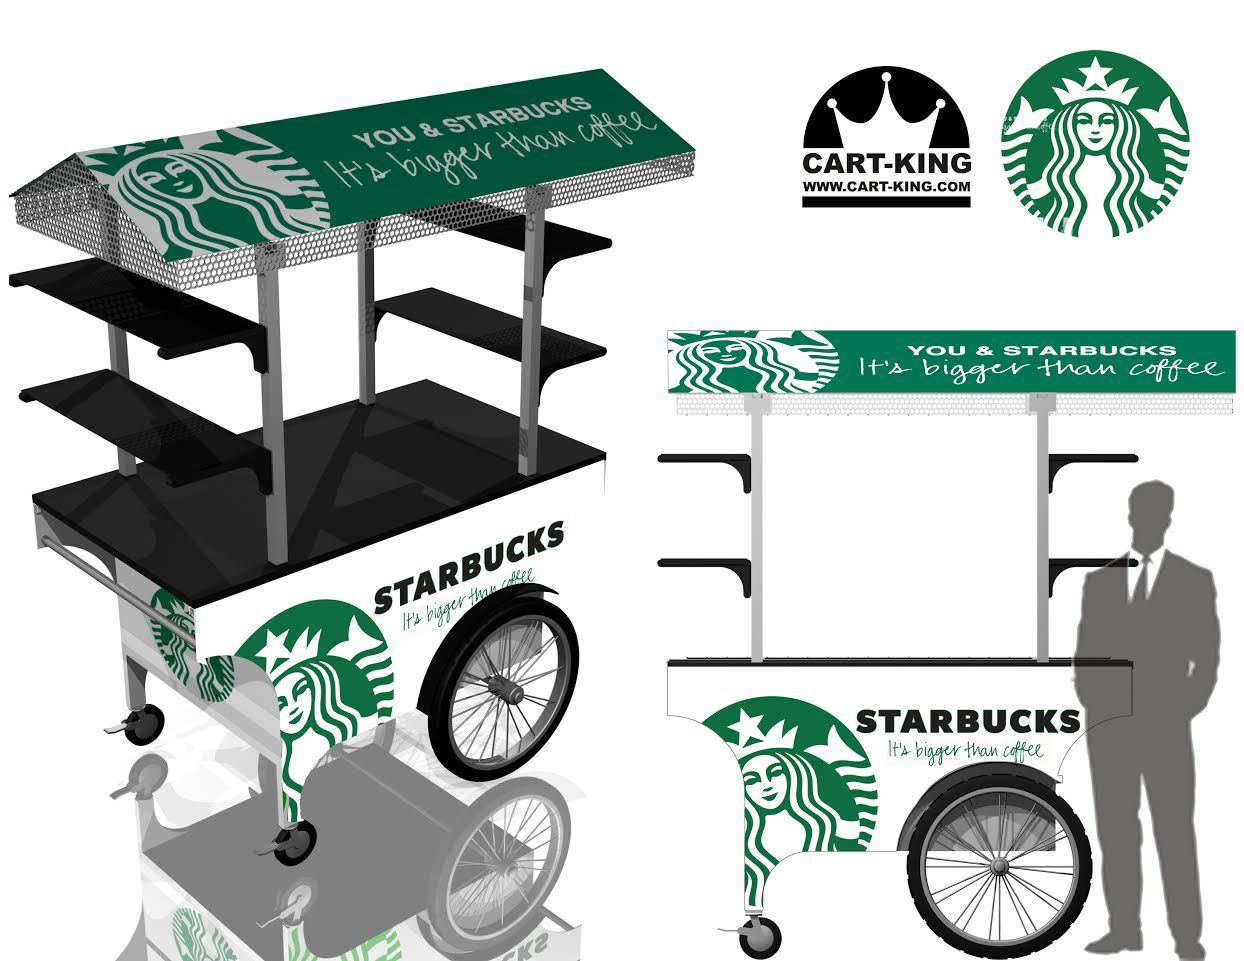 A Starbucks Coffee Cart Designed For Portable Use. Highly Mobile For Street  Vending. Designed